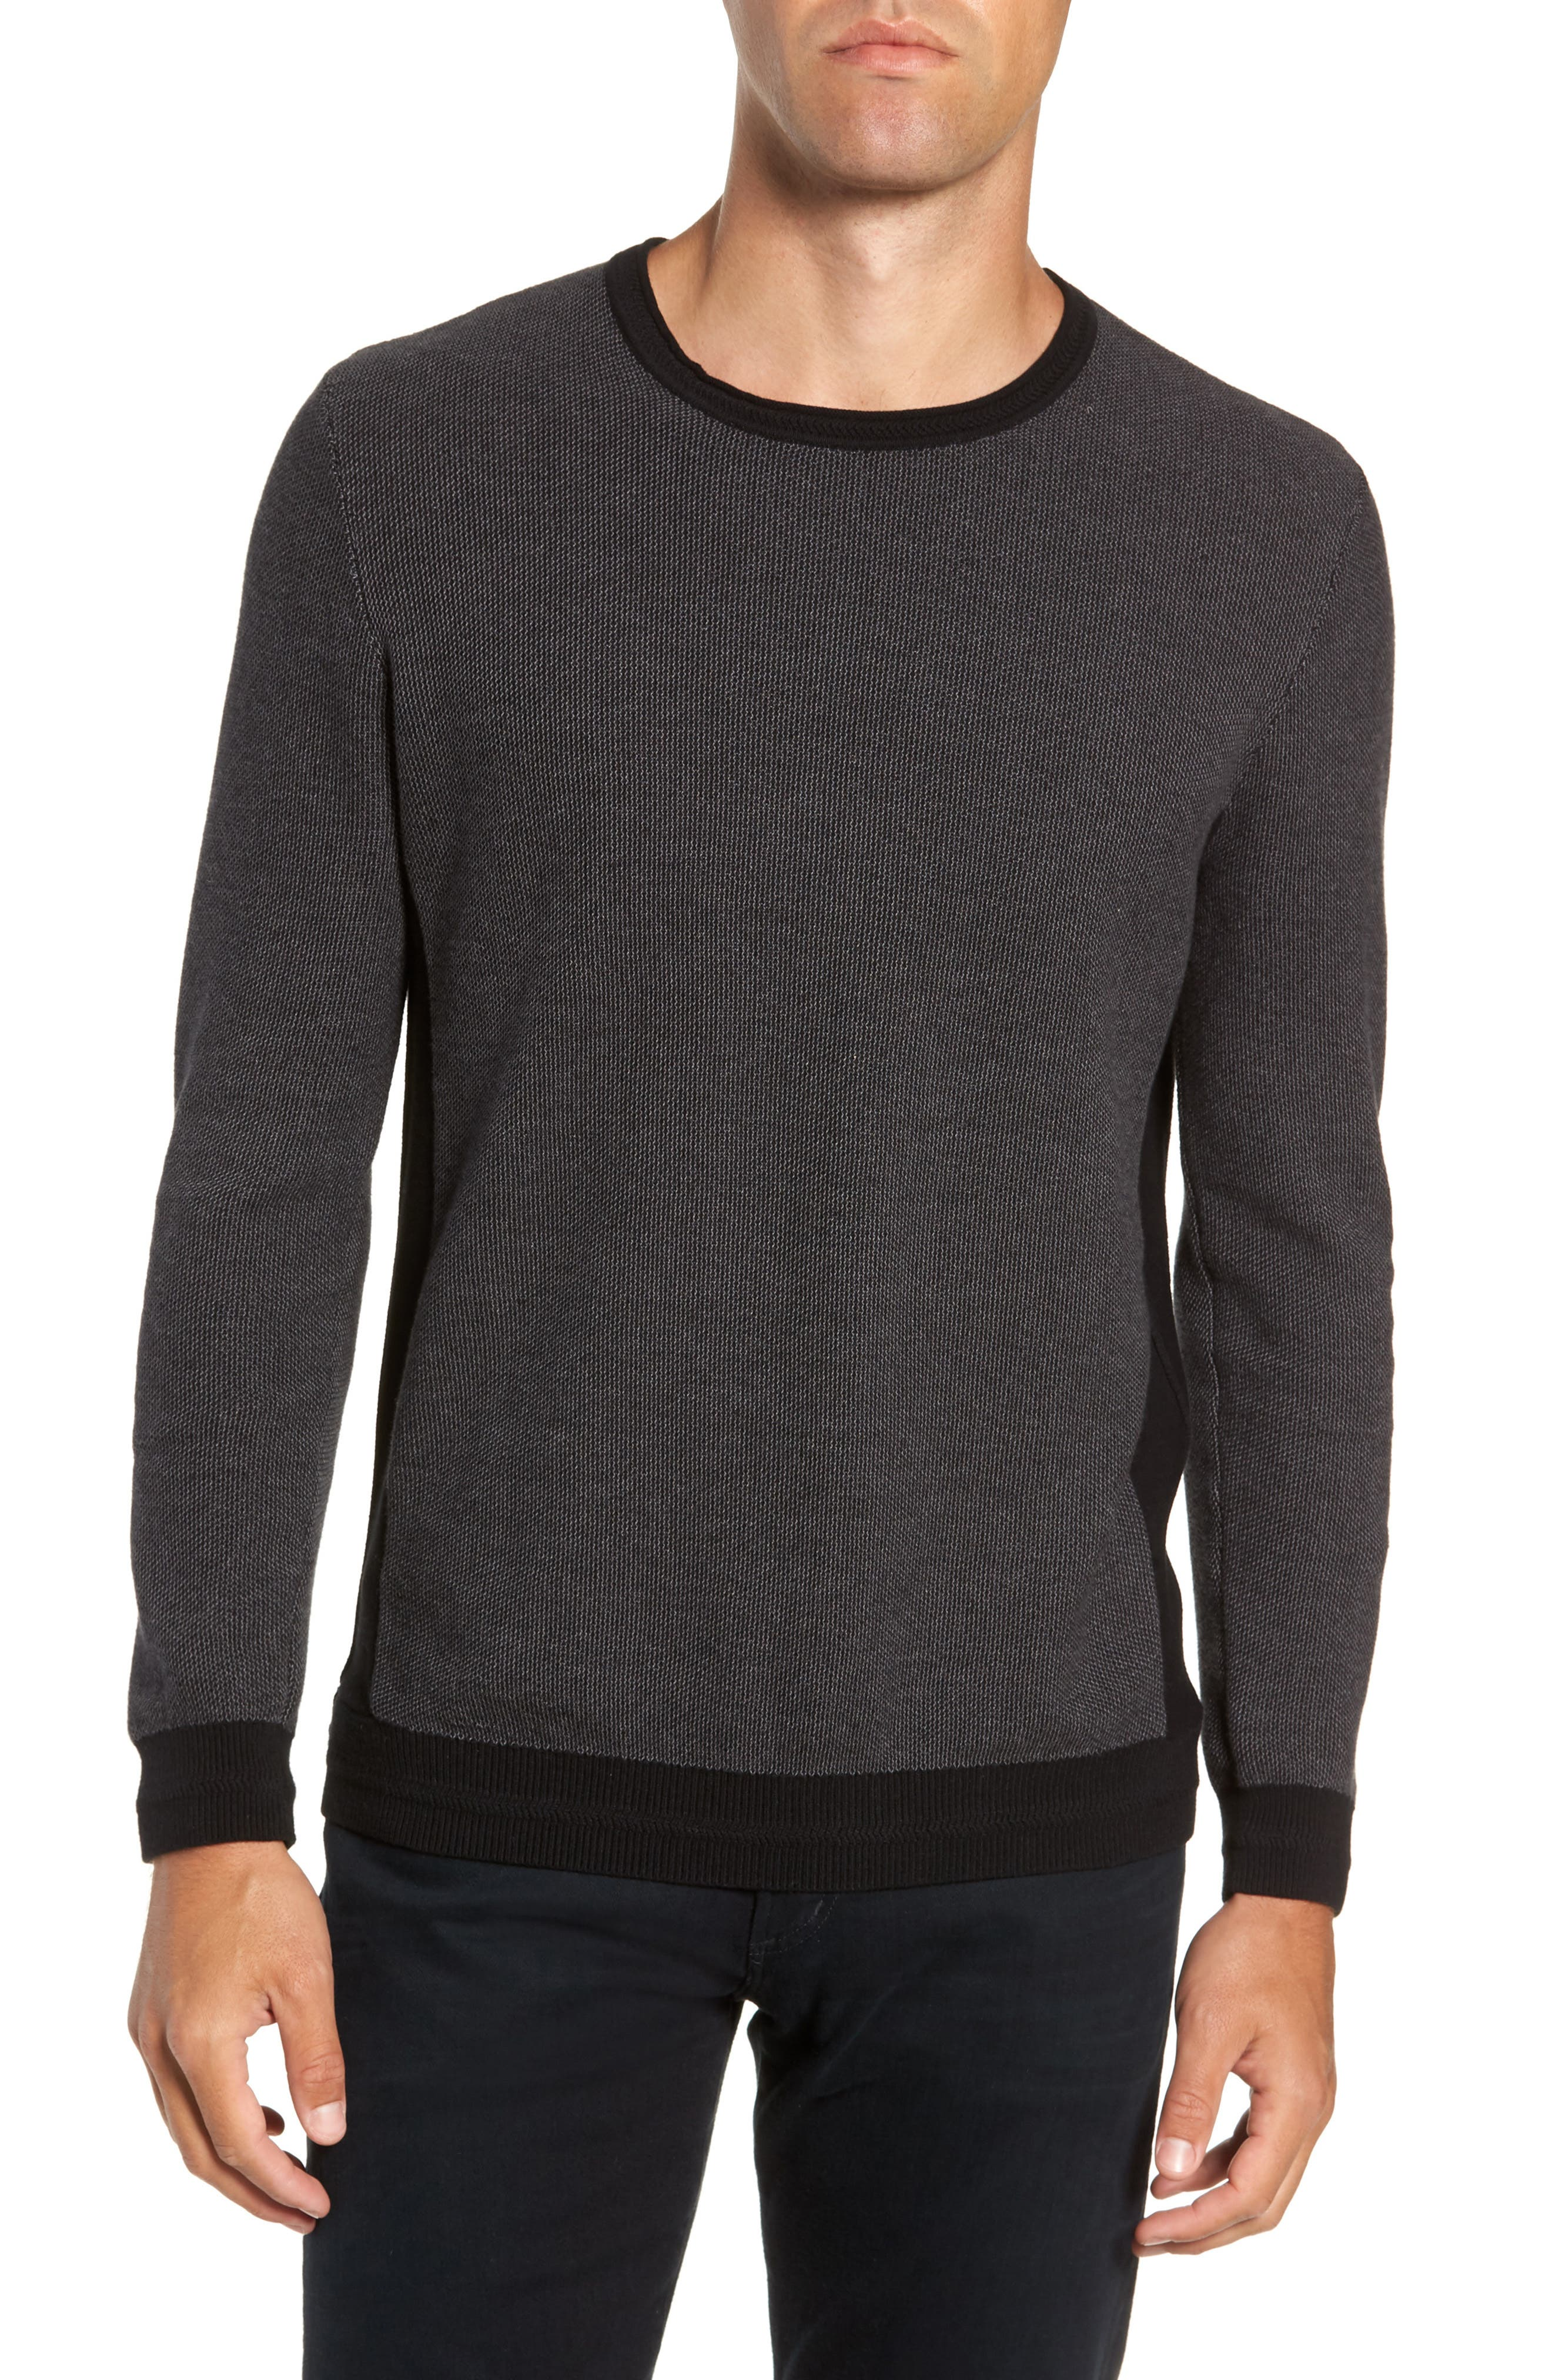 Vince Camuto Space Dye Slim Fit Sweater, Black